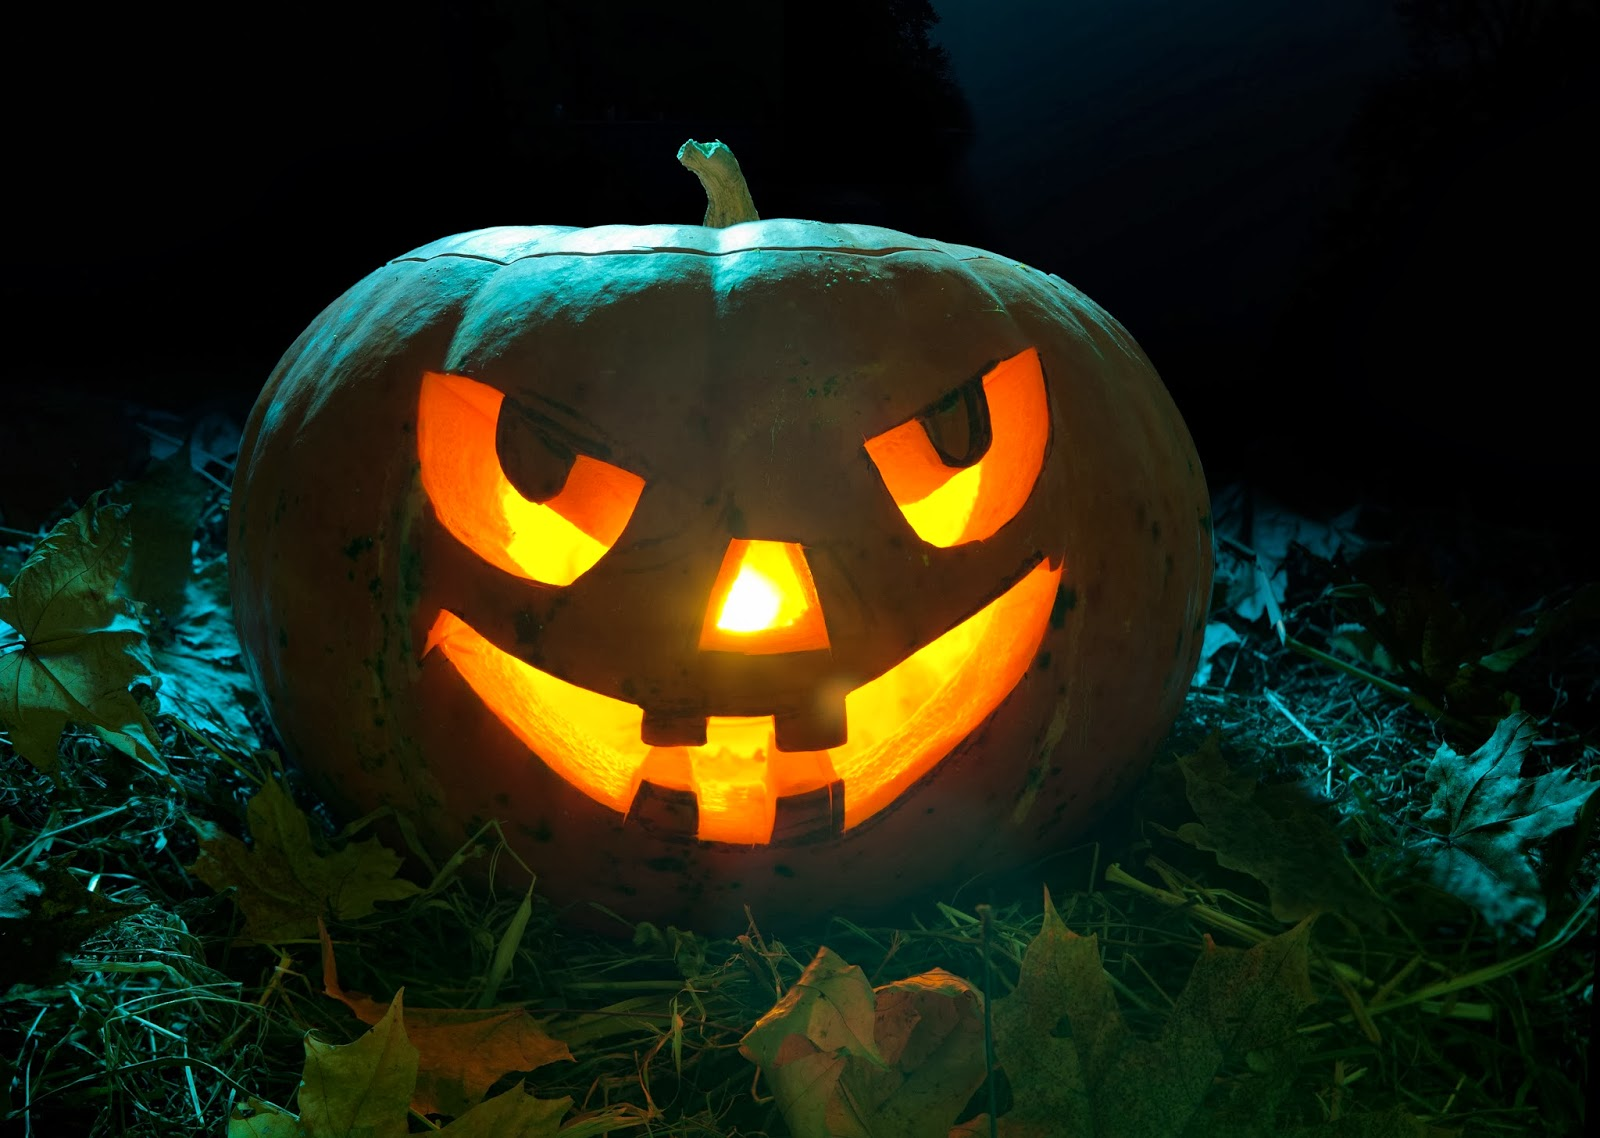 halloween hd wallpaper 1080p images backgrounds collection